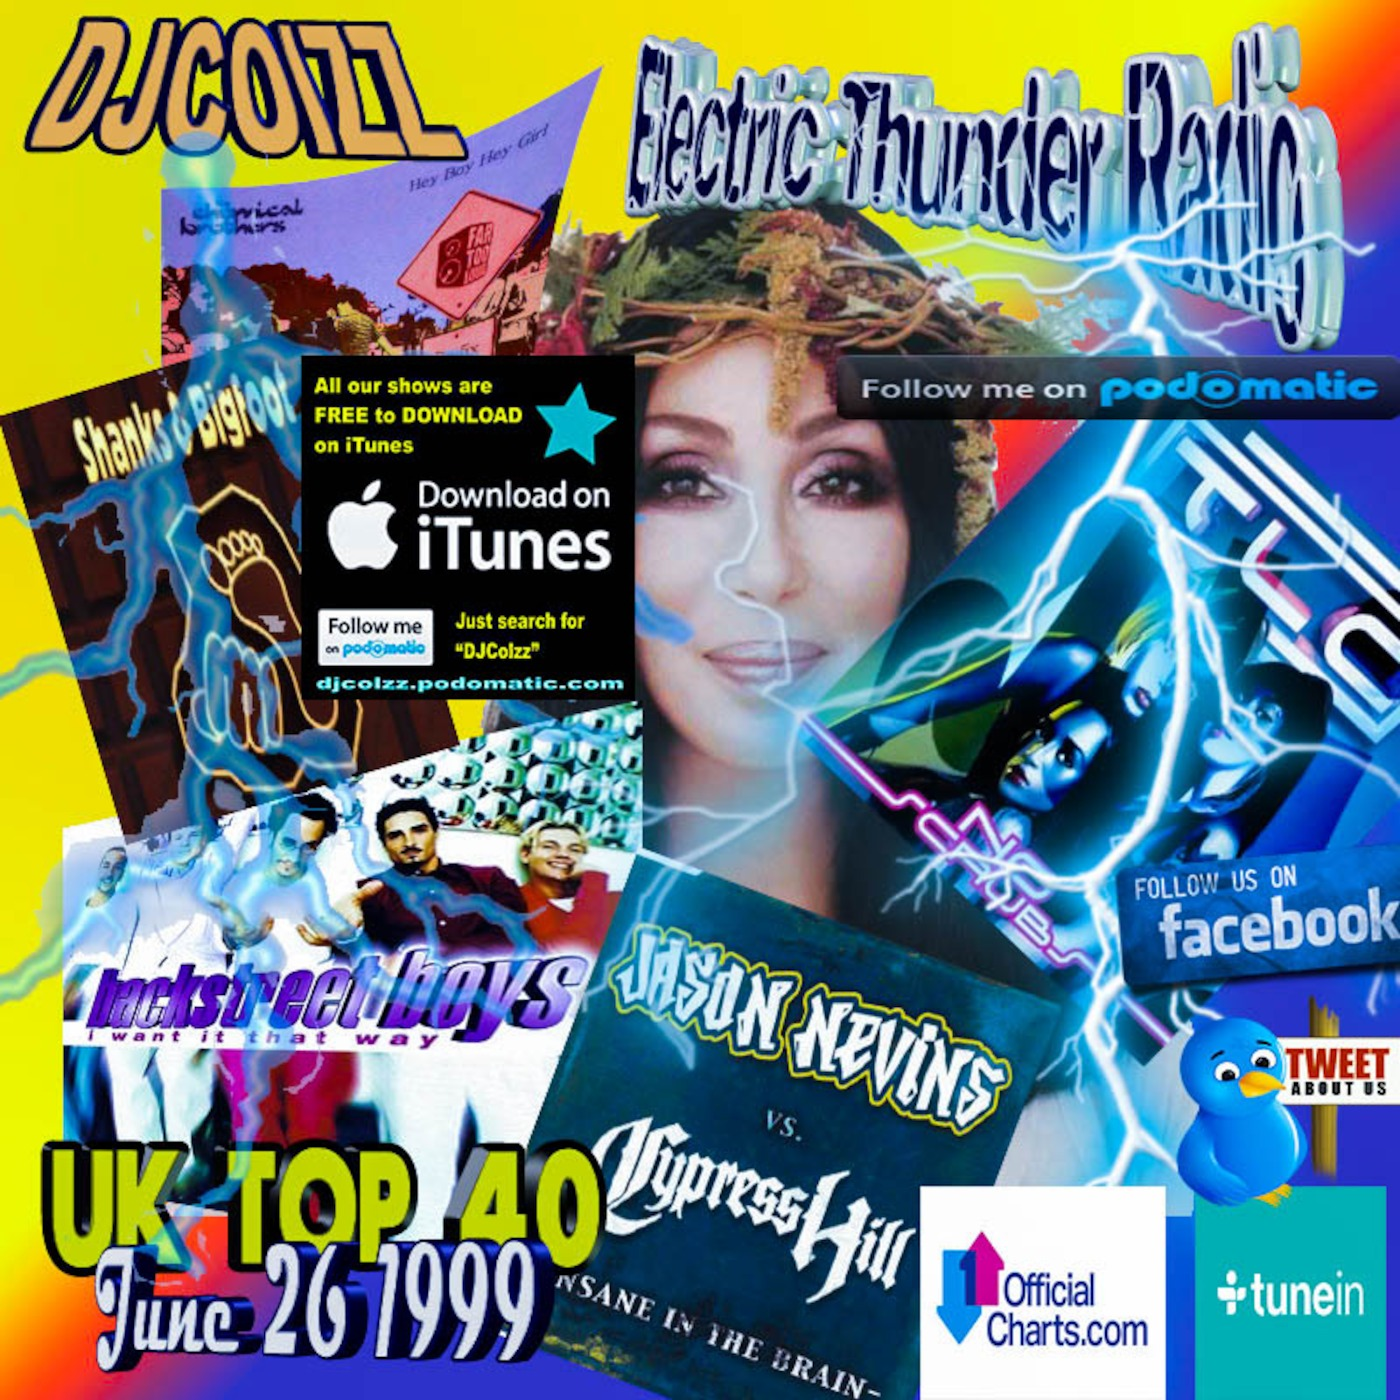 UK Top 40 Singles June 26 1999 Electric Thunder Radio podcast